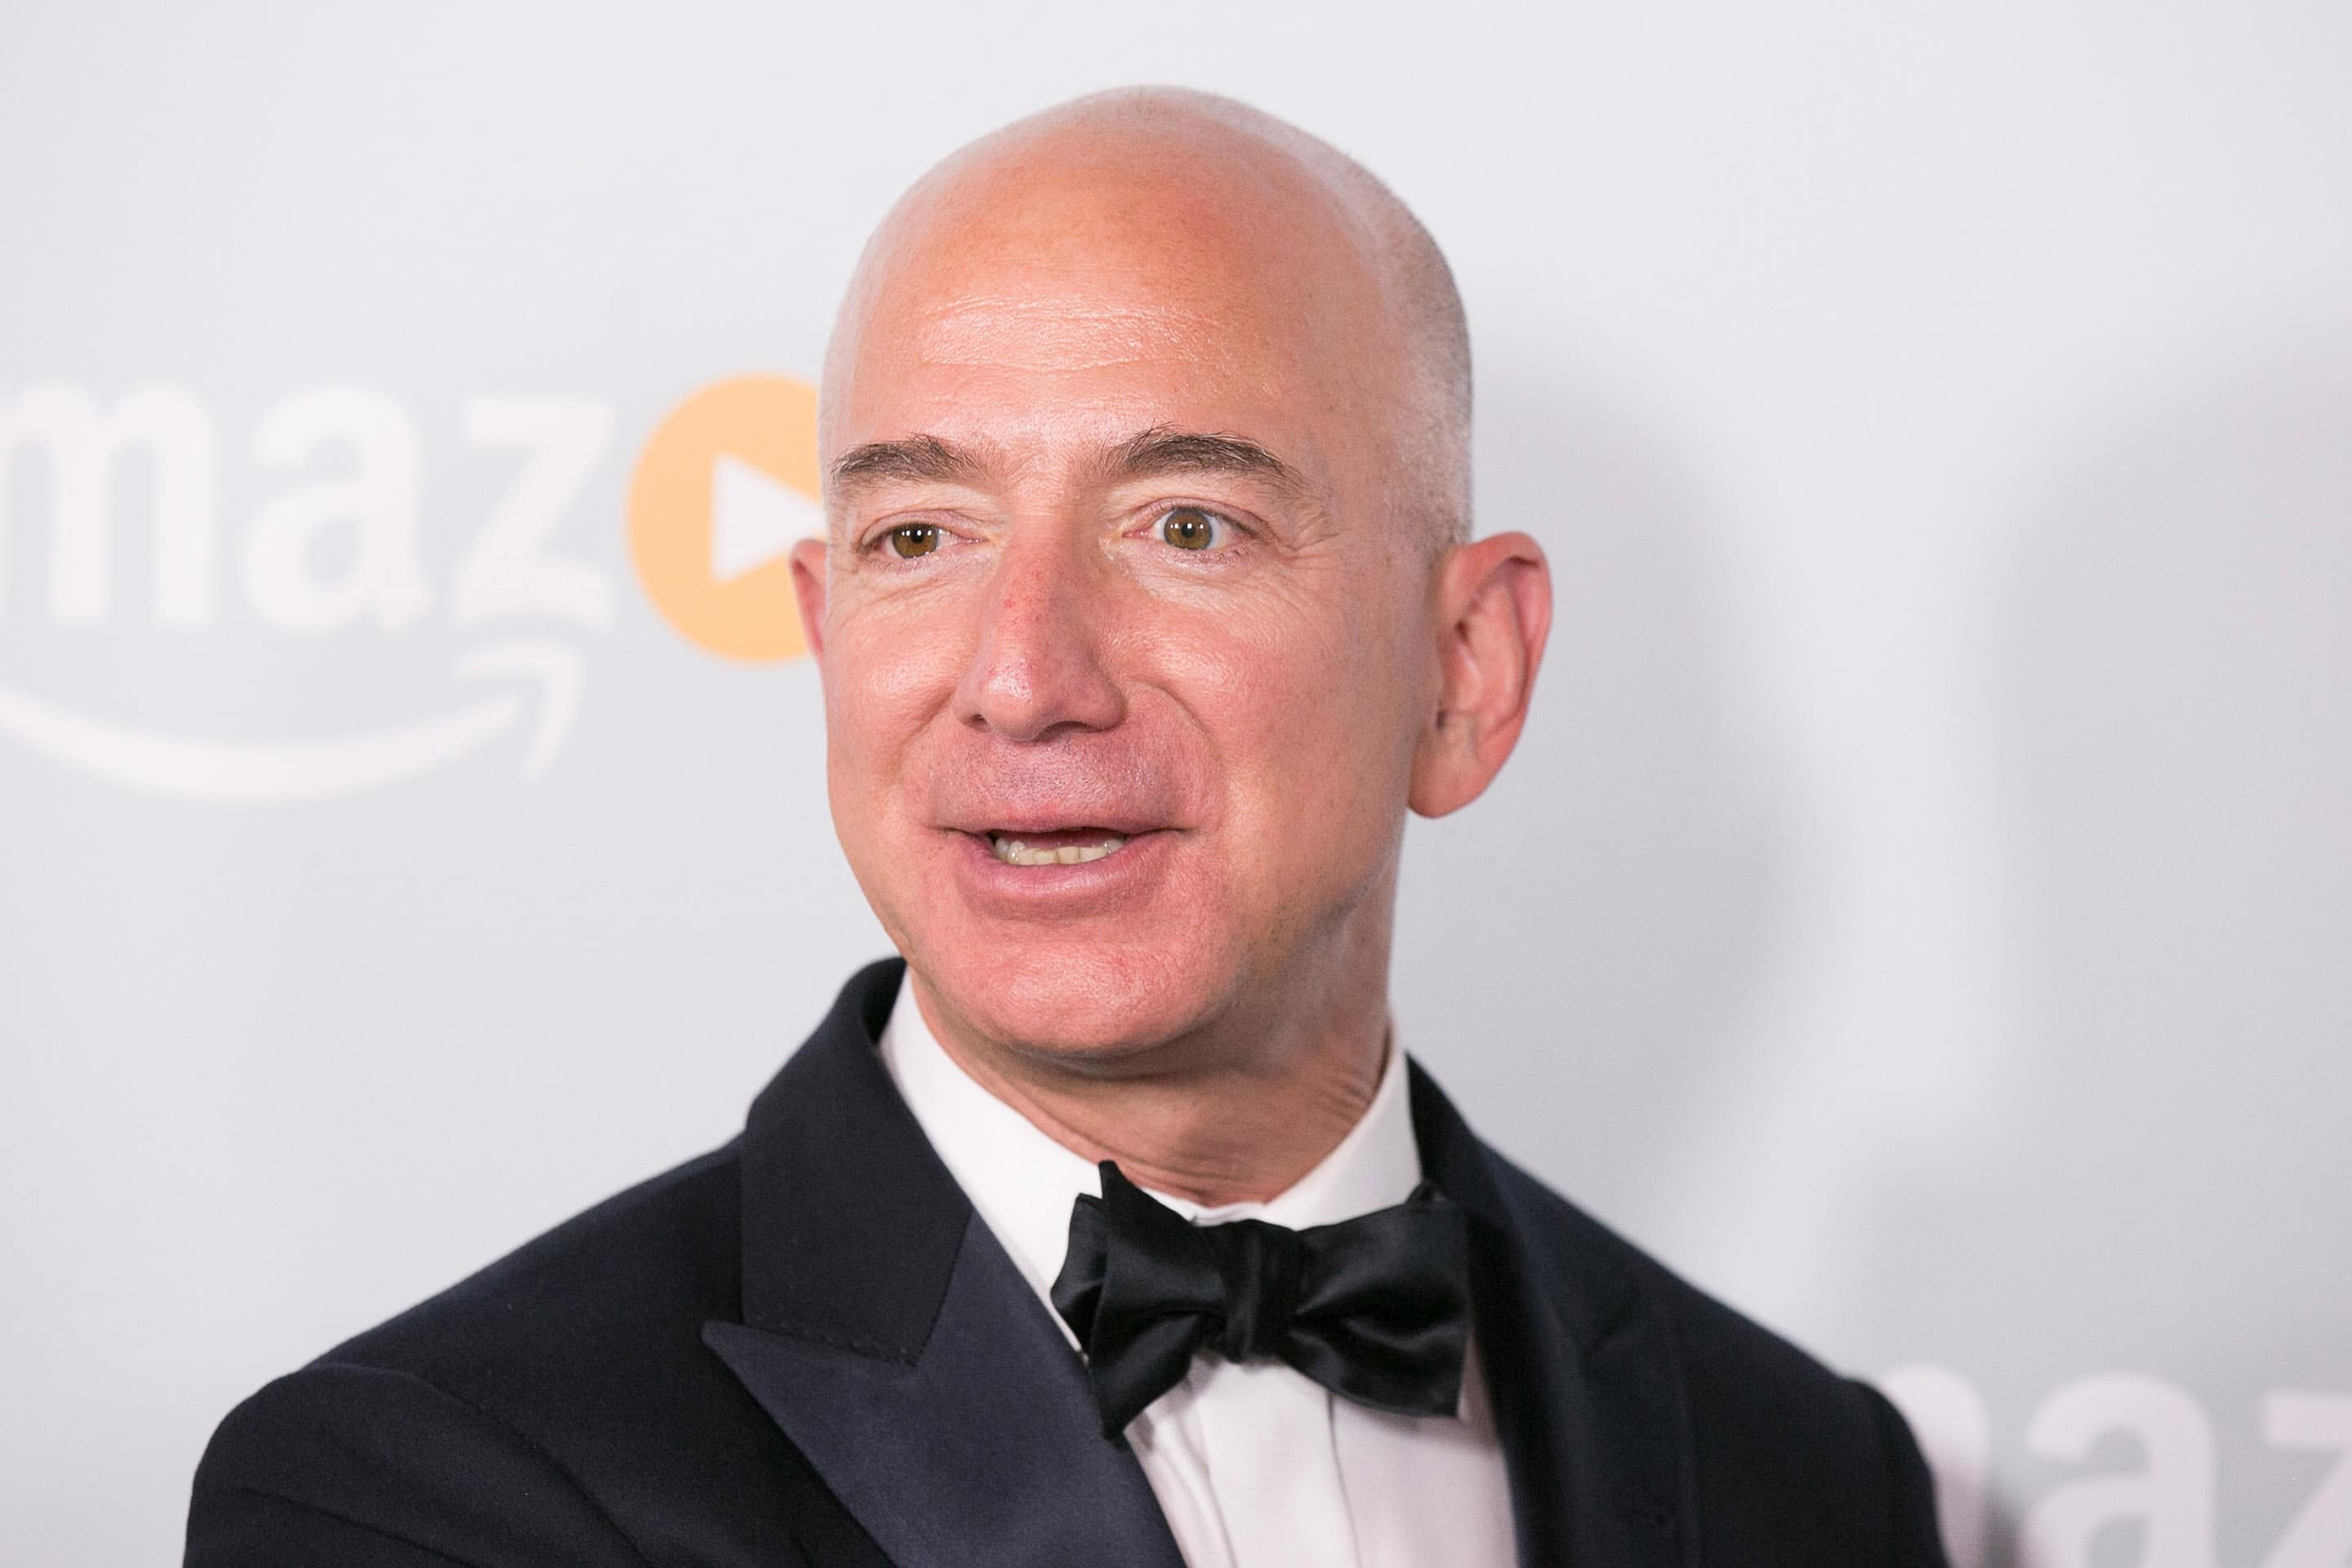 Bill Gates is no longer The World's Richest man, Jeff Bezos is!